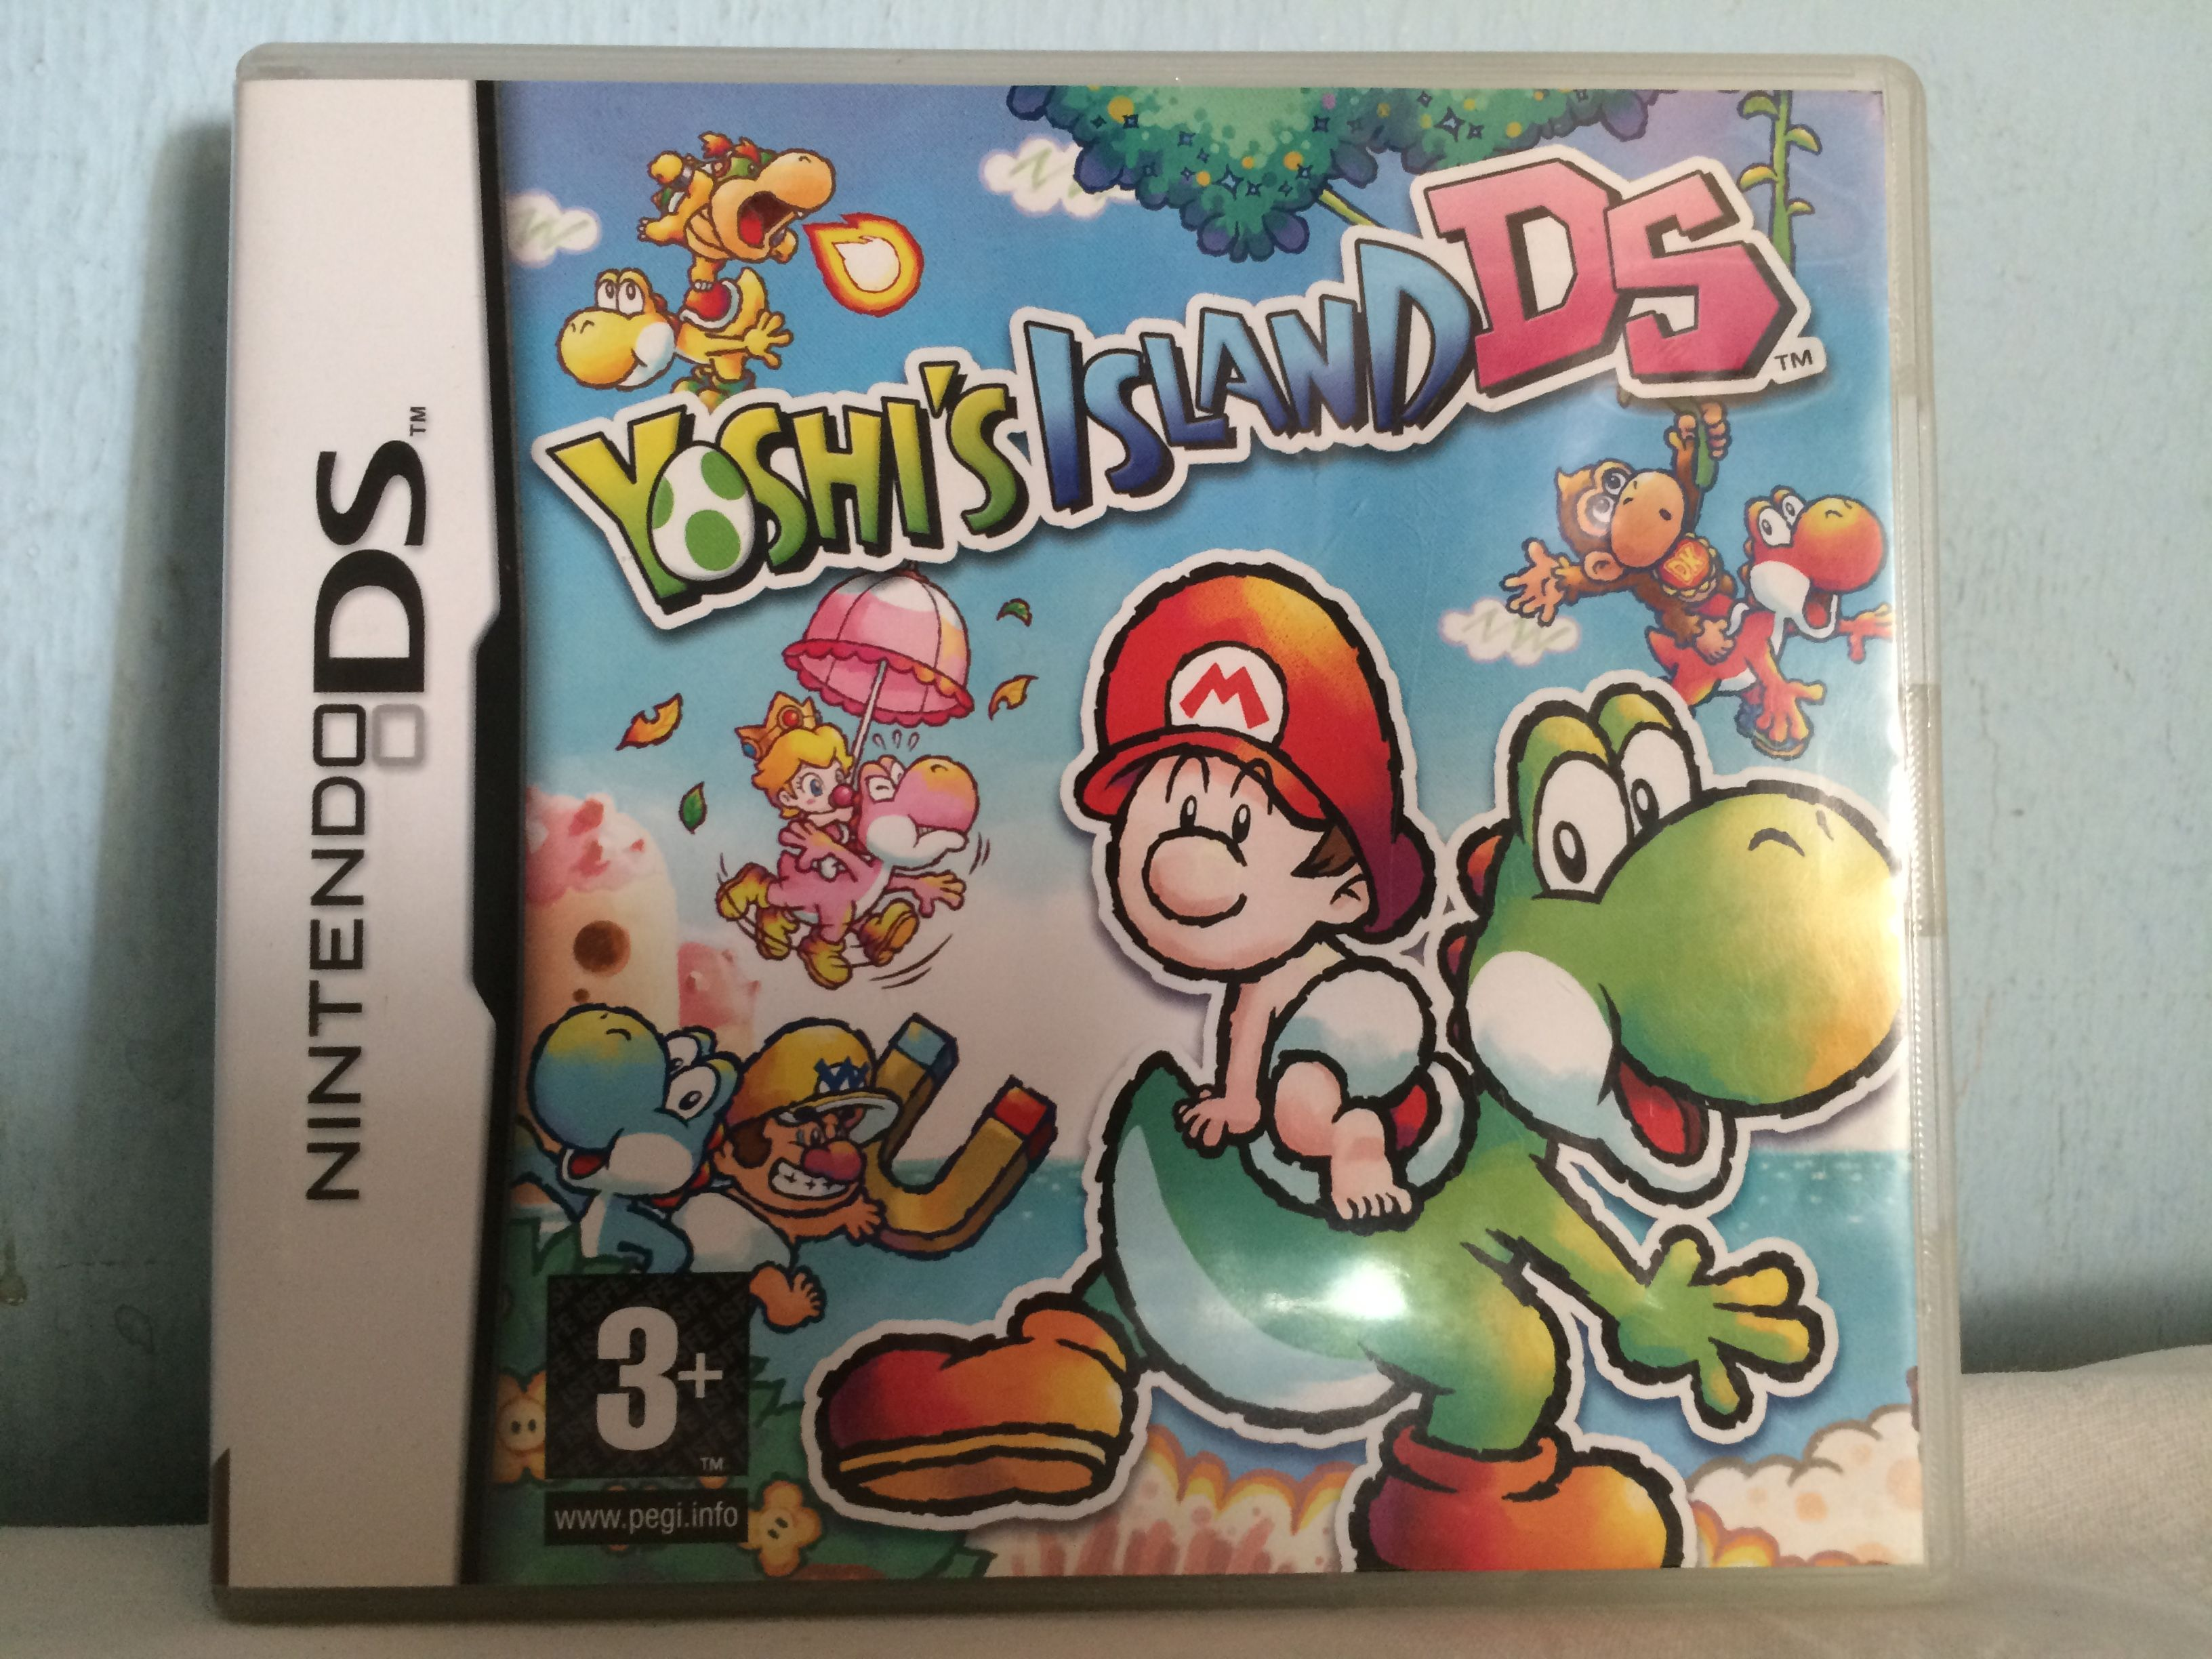 Yoshis island ds game yoshis island ds ds pinterest ds yoshis island ds game ds gamesislandsmanualtextbookuser sciox Image collections